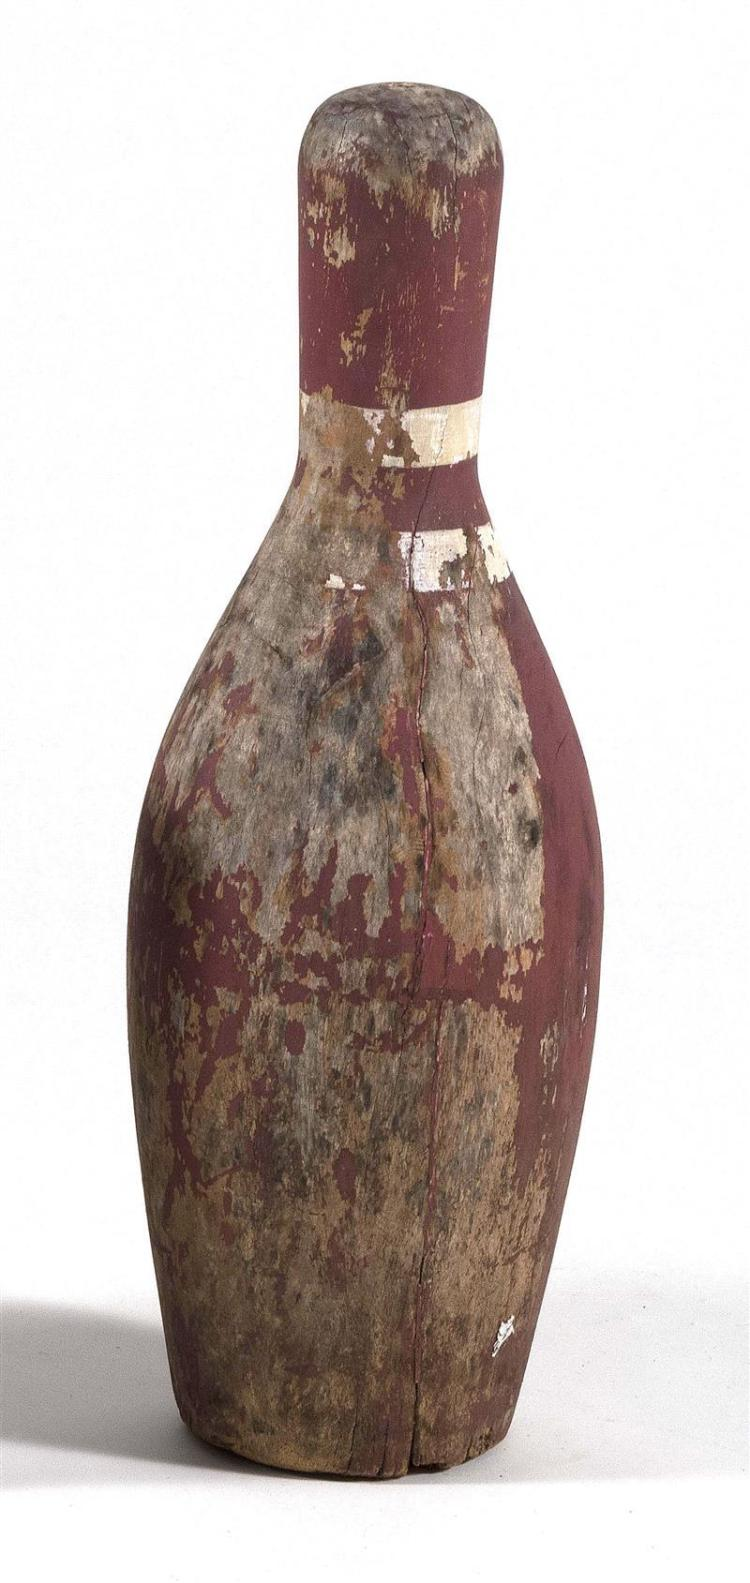 OVERSIZE WOODEN BOWLING PIN Painted red with white stripes. Height 24.5